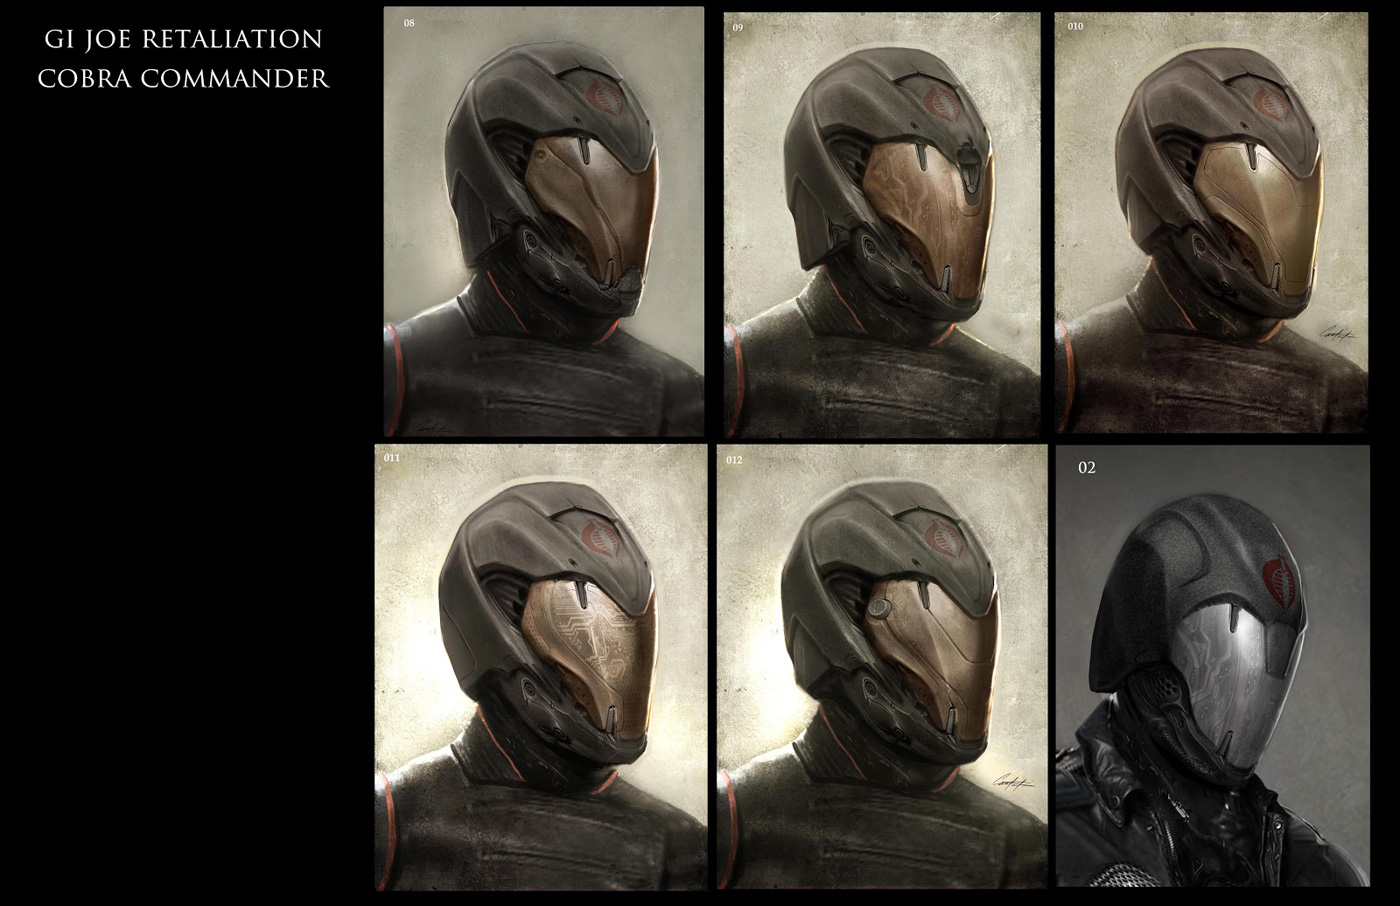 Cobra Commander Retaliation G I  Joe Retaliation Concept